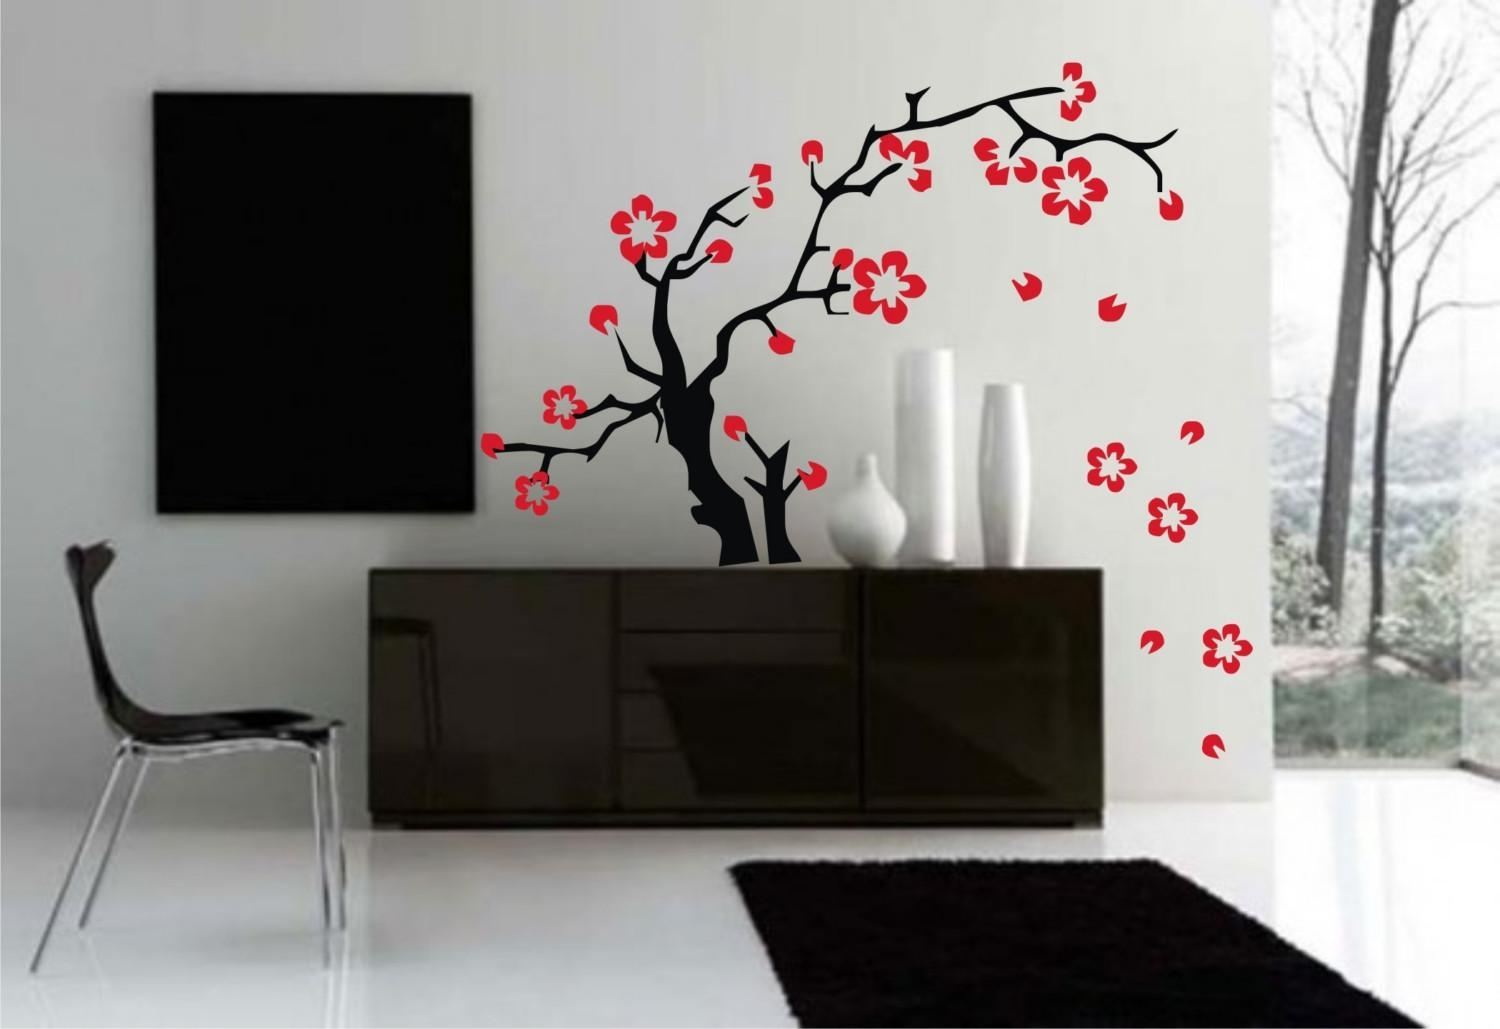 Graphic Design Wall Art | Wallartideas With Regard To Graphic Design Wall Art (View 5 of 20)